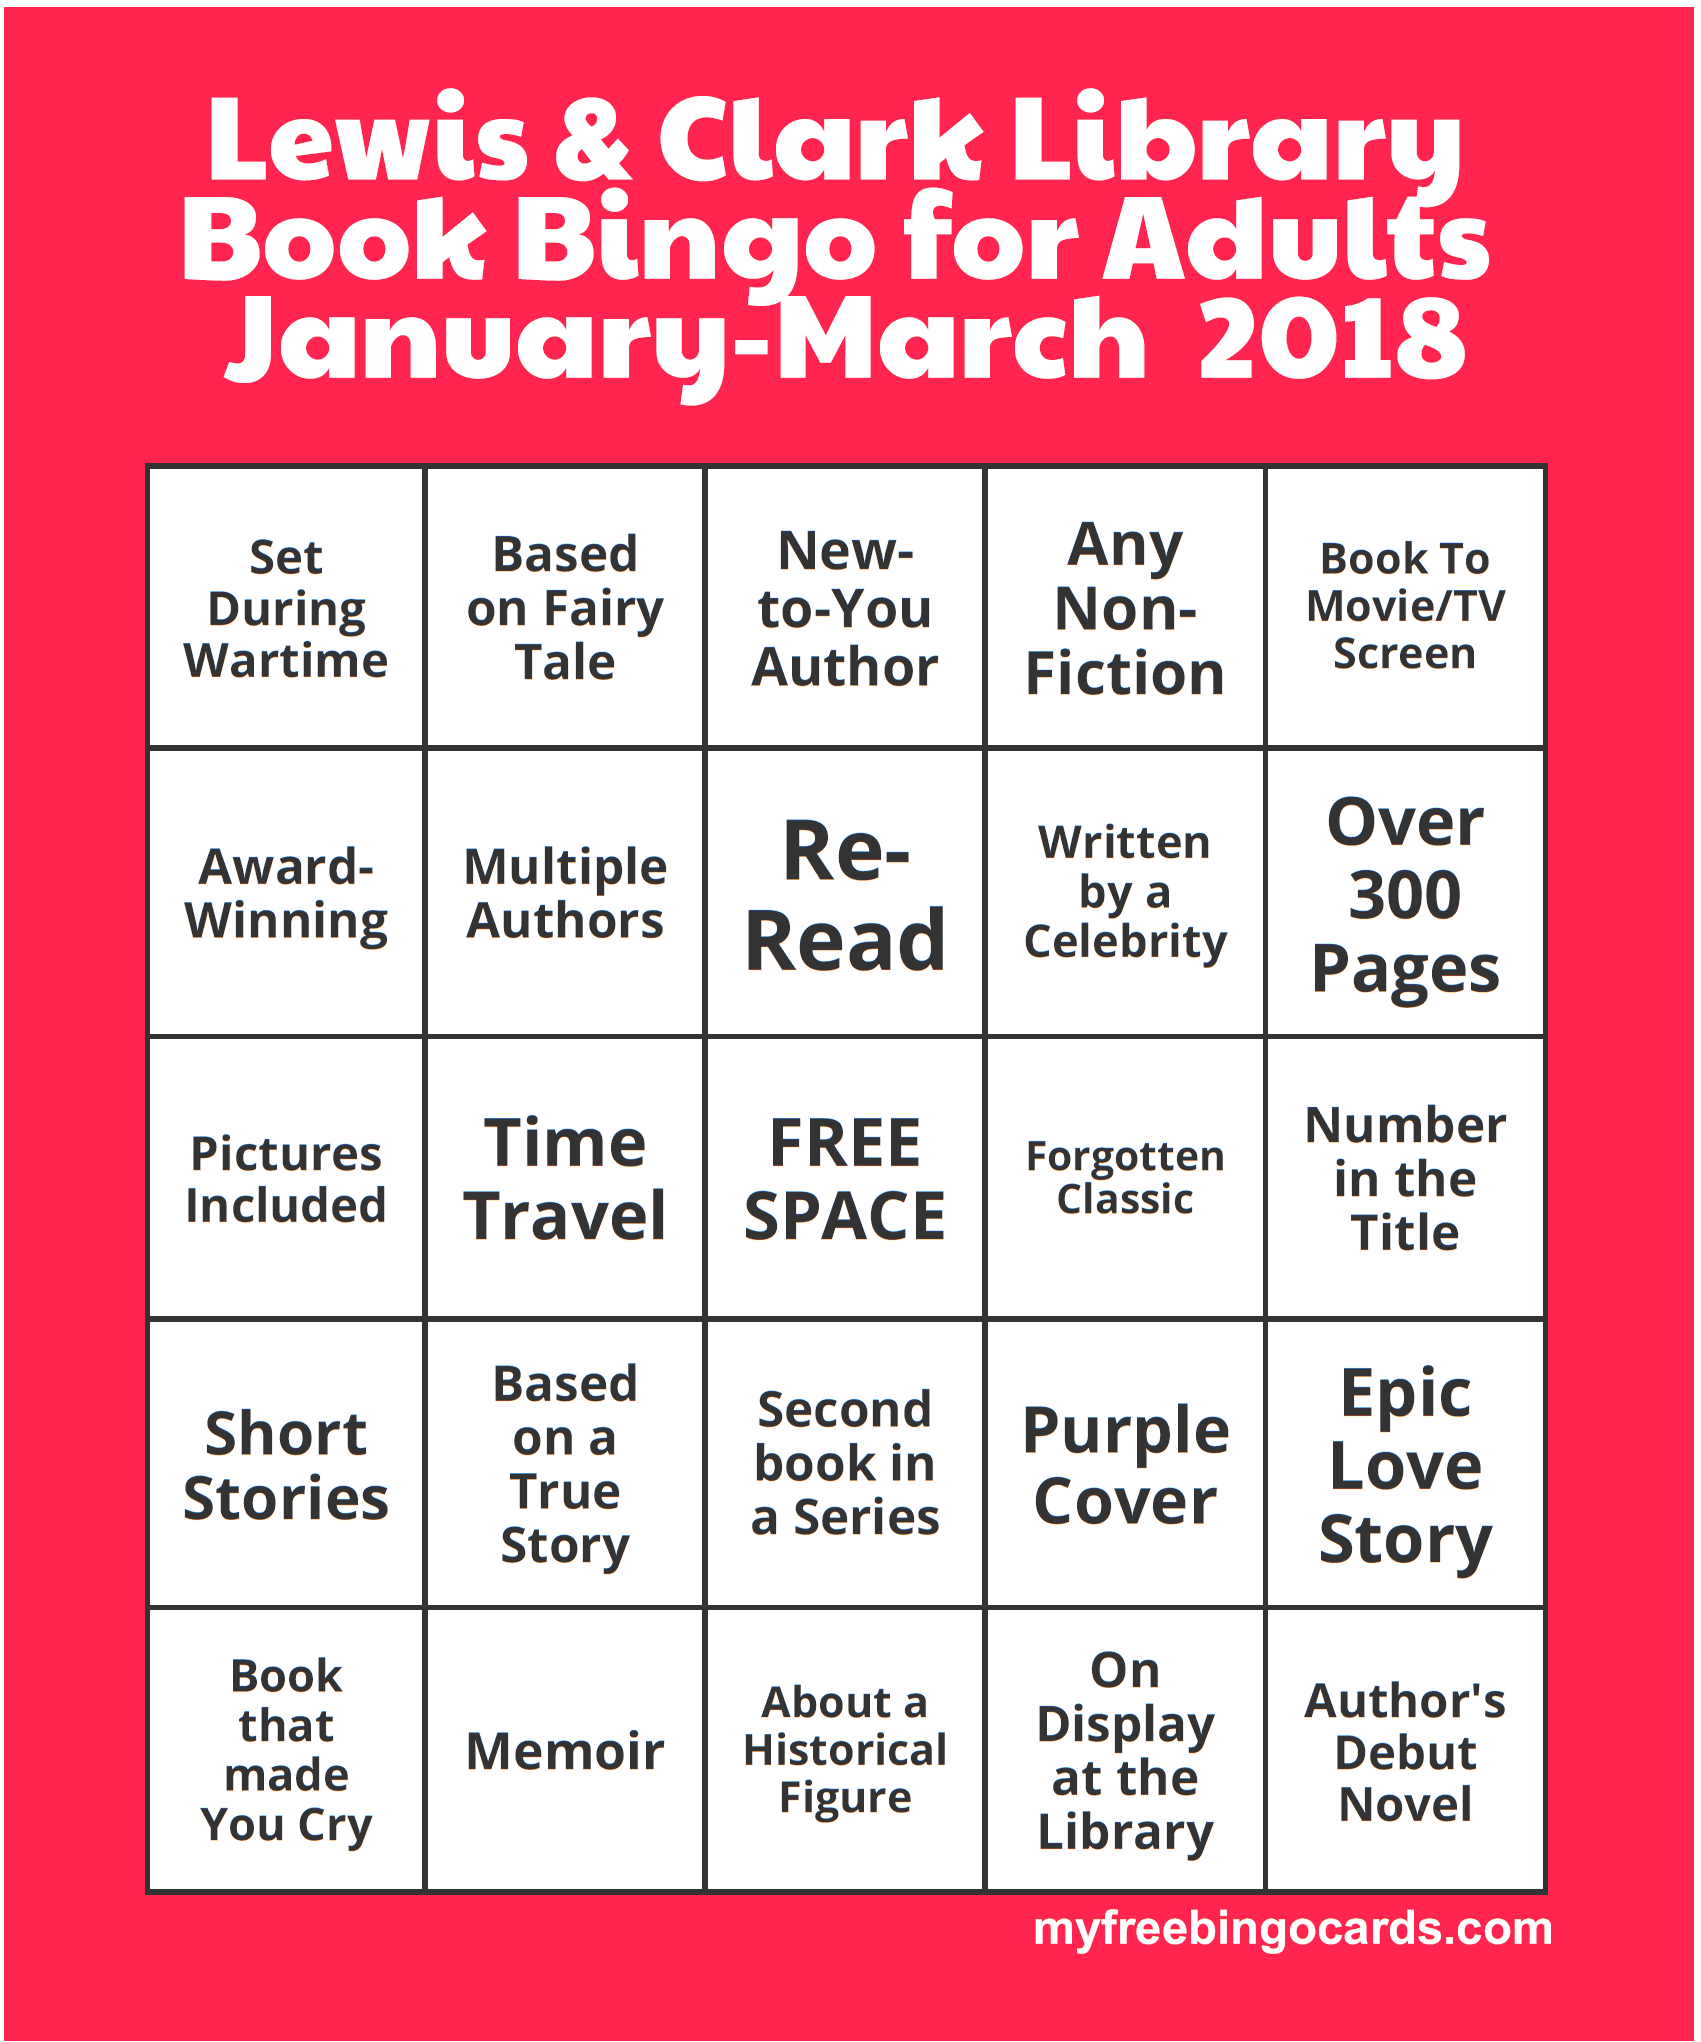 Book Bingo For Adults Starts January 1